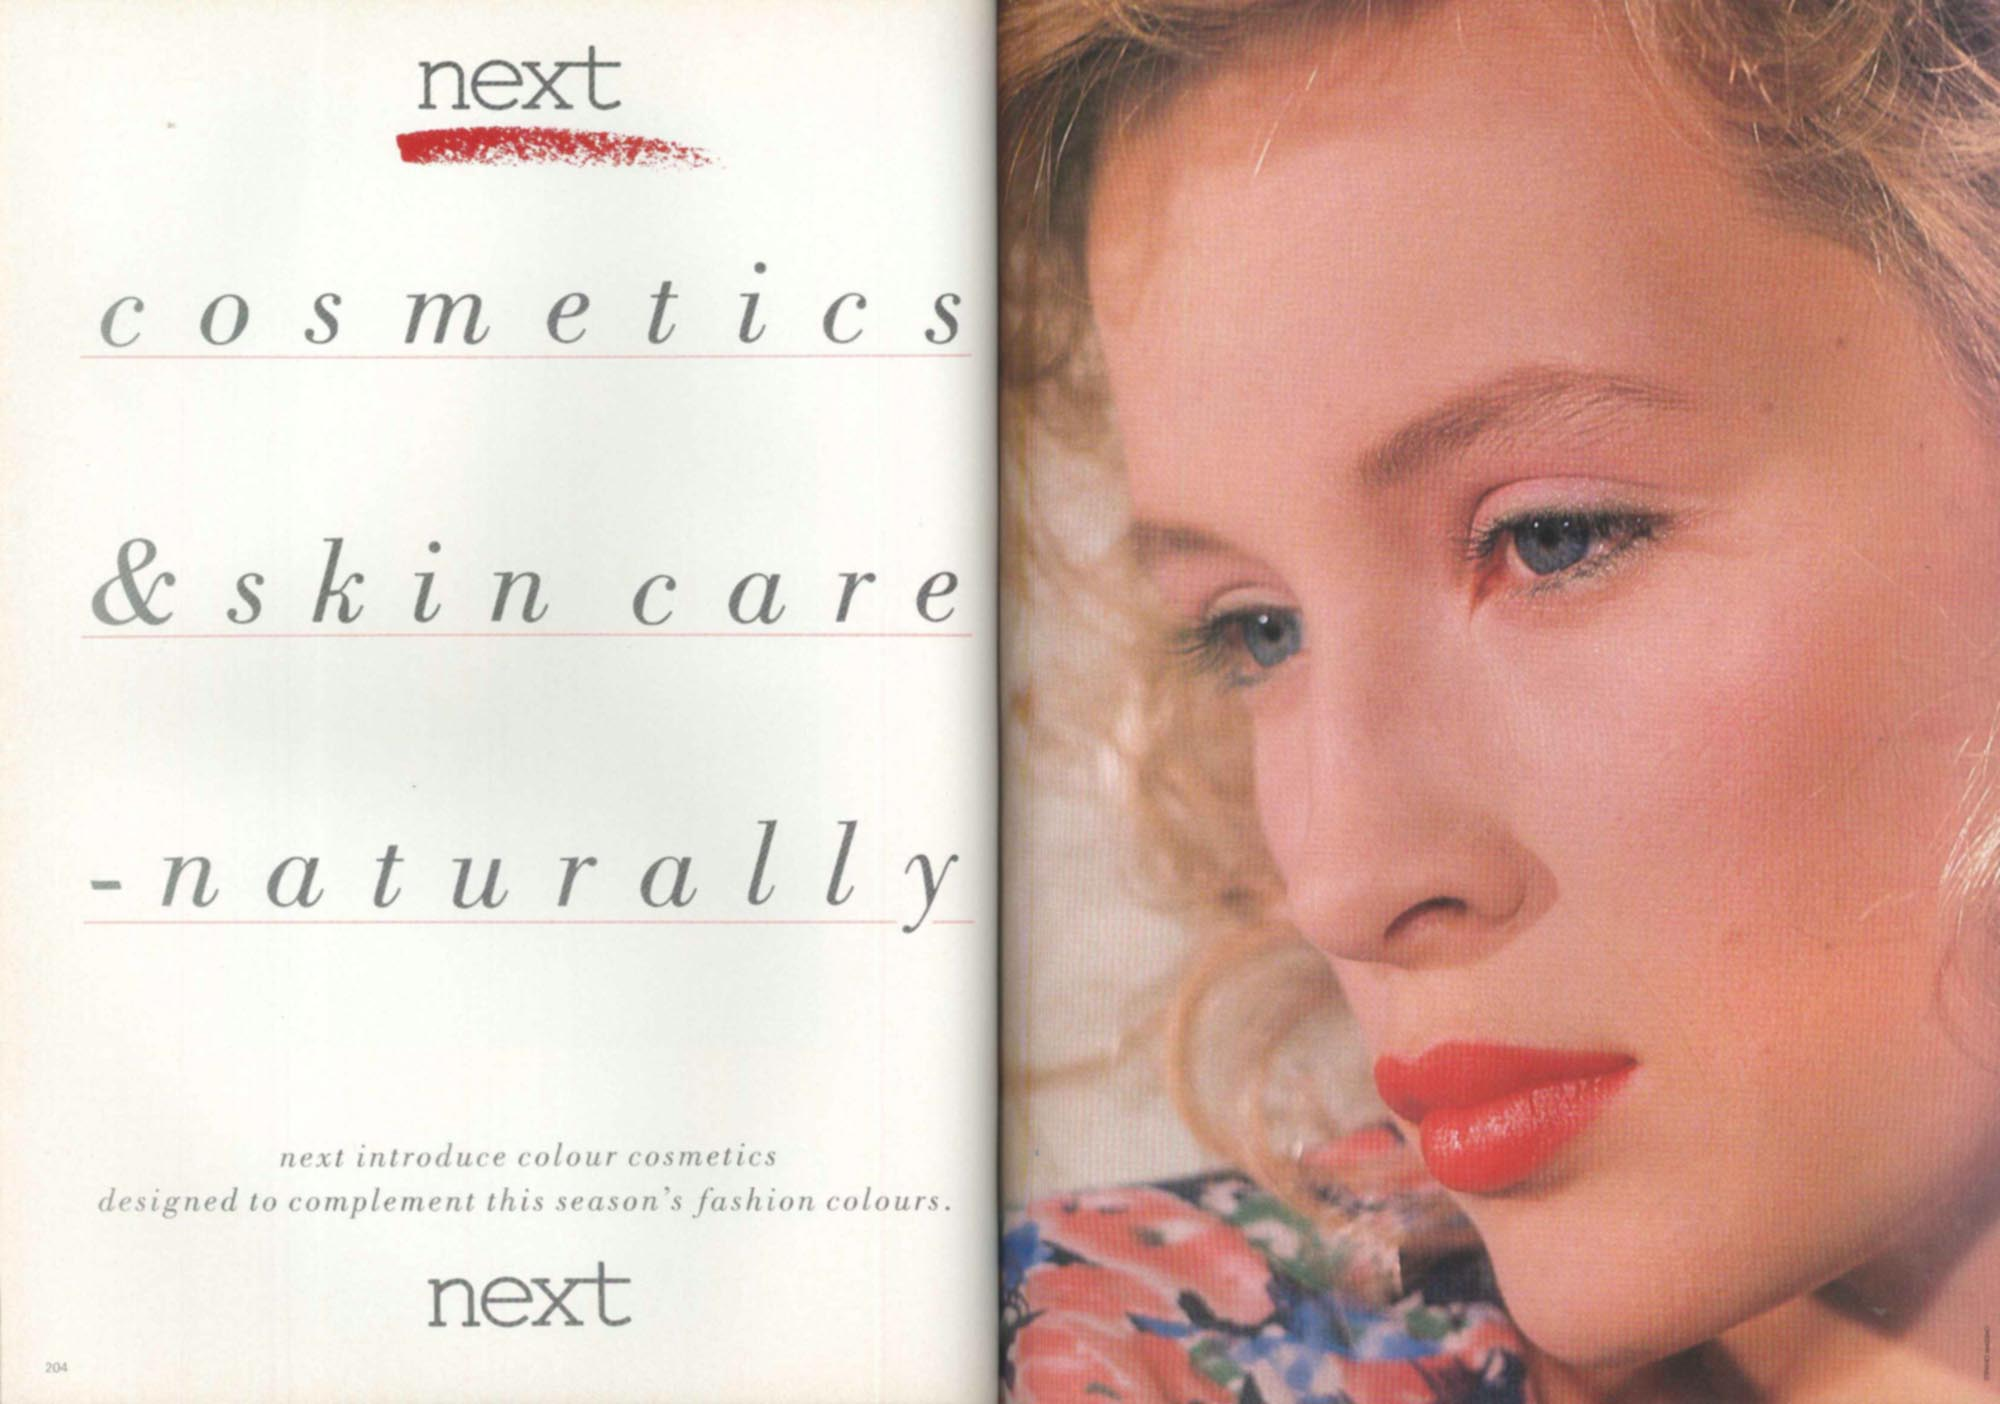 An advert for cosmetics by the Leicester company Next, 1986 -